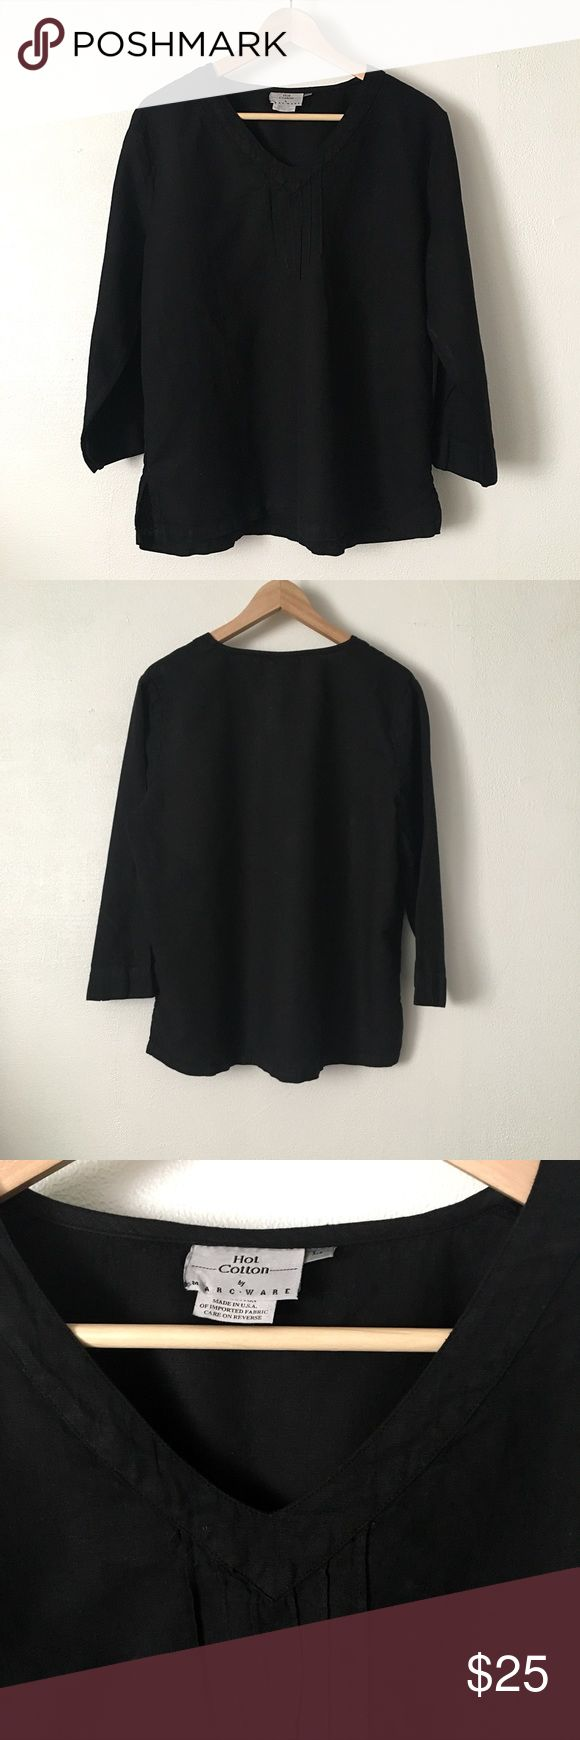 🆕 Listing!  Hot Cotton by Marc Ware   Tunic Black cotton/linen blend tunic.  V-neck with pleat detail. Hot Cotton by Marc Ware Tops Tunics